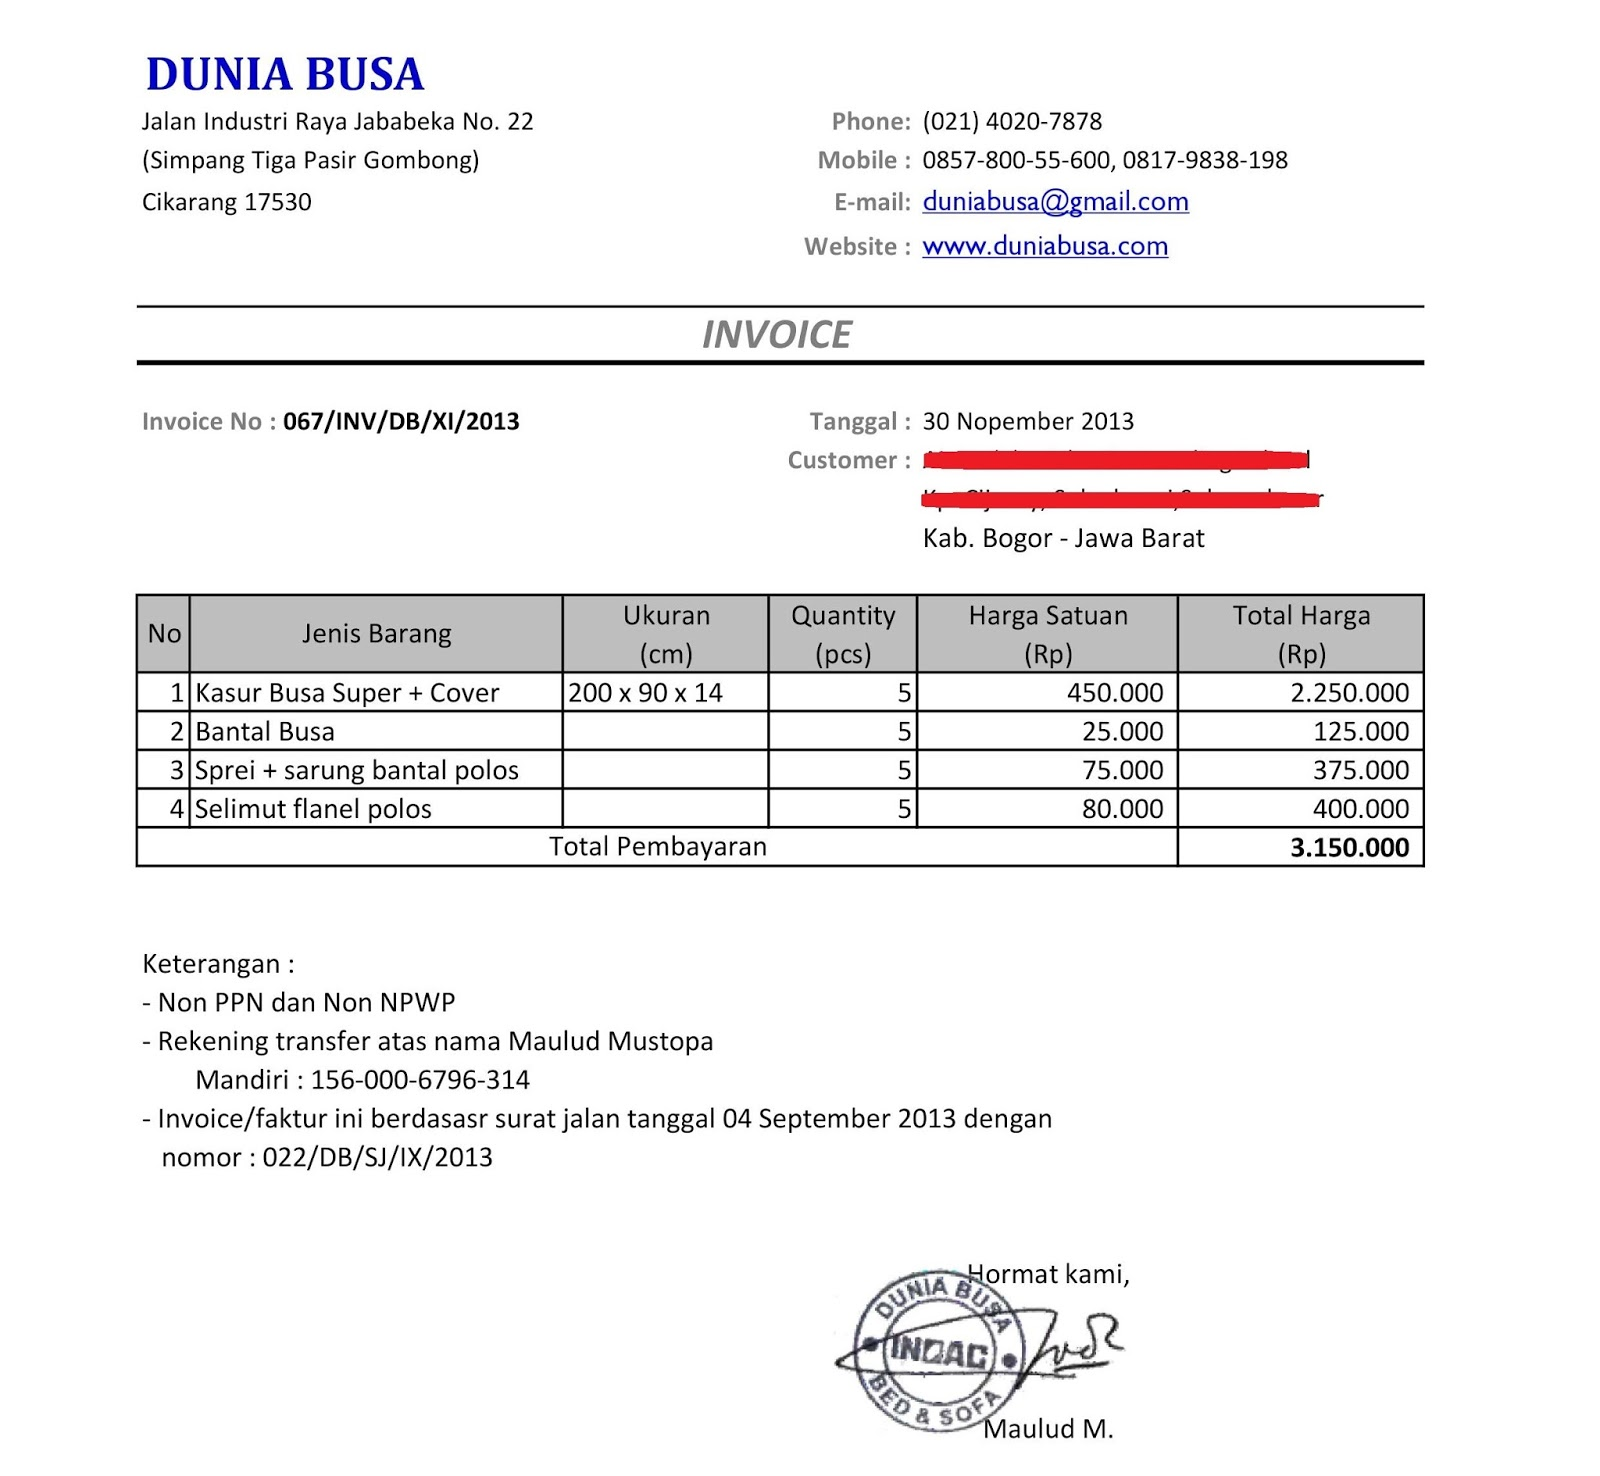 Floobydustus  Unusual Free Invoice Online  Create Invoice Online  Invoice Template  With Remarkable Contoh Format Invoice Atau Surat Tagihan  Brankas Arsip  Free Invoice Online With Archaic Quick Books Invoices Also Credit Card Invoice Template In Addition Invoice Accrual And How To Create An Invoice On Excel As Well As Carbon Copy Invoice Additionally Find Out Invoice Price Of Car From Sklepco With Floobydustus  Remarkable Free Invoice Online  Create Invoice Online  Invoice Template  With Archaic Contoh Format Invoice Atau Surat Tagihan  Brankas Arsip  Free Invoice Online And Unusual Quick Books Invoices Also Credit Card Invoice Template In Addition Invoice Accrual From Sklepco